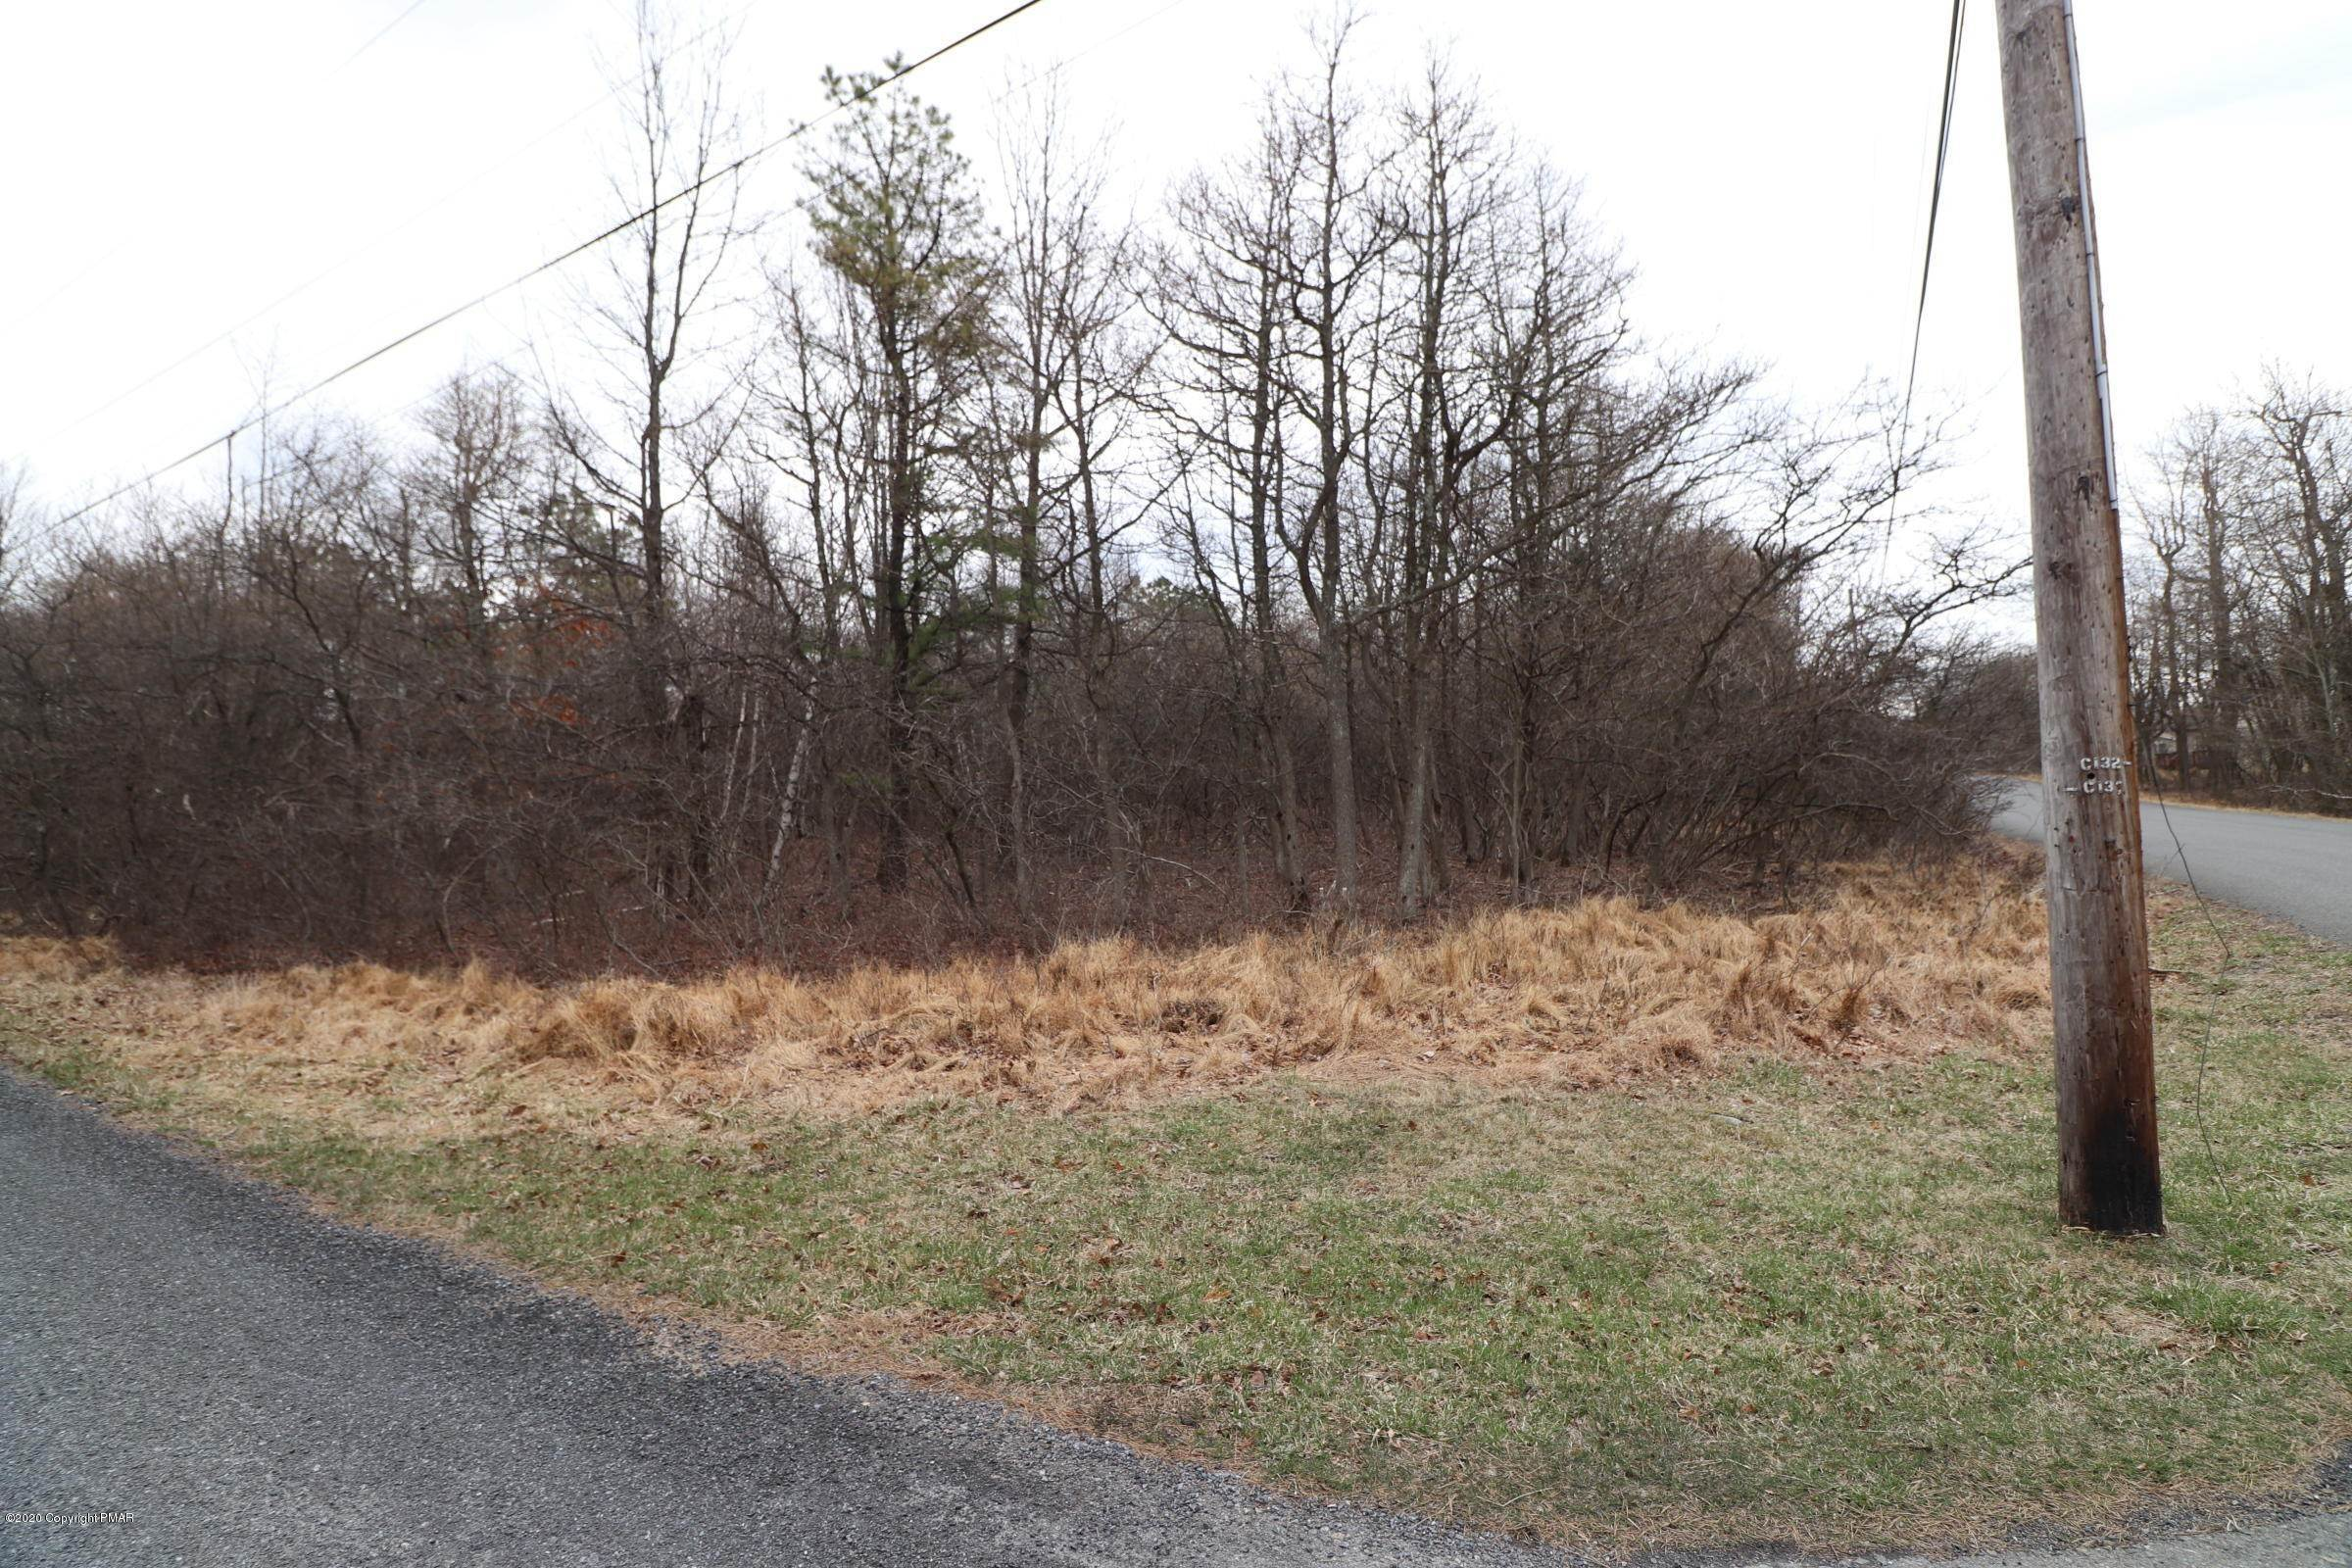 2. Land for Sale at Maccauley Road & Berryman Ln Albrightsville, Pennsylvania 18229 United States